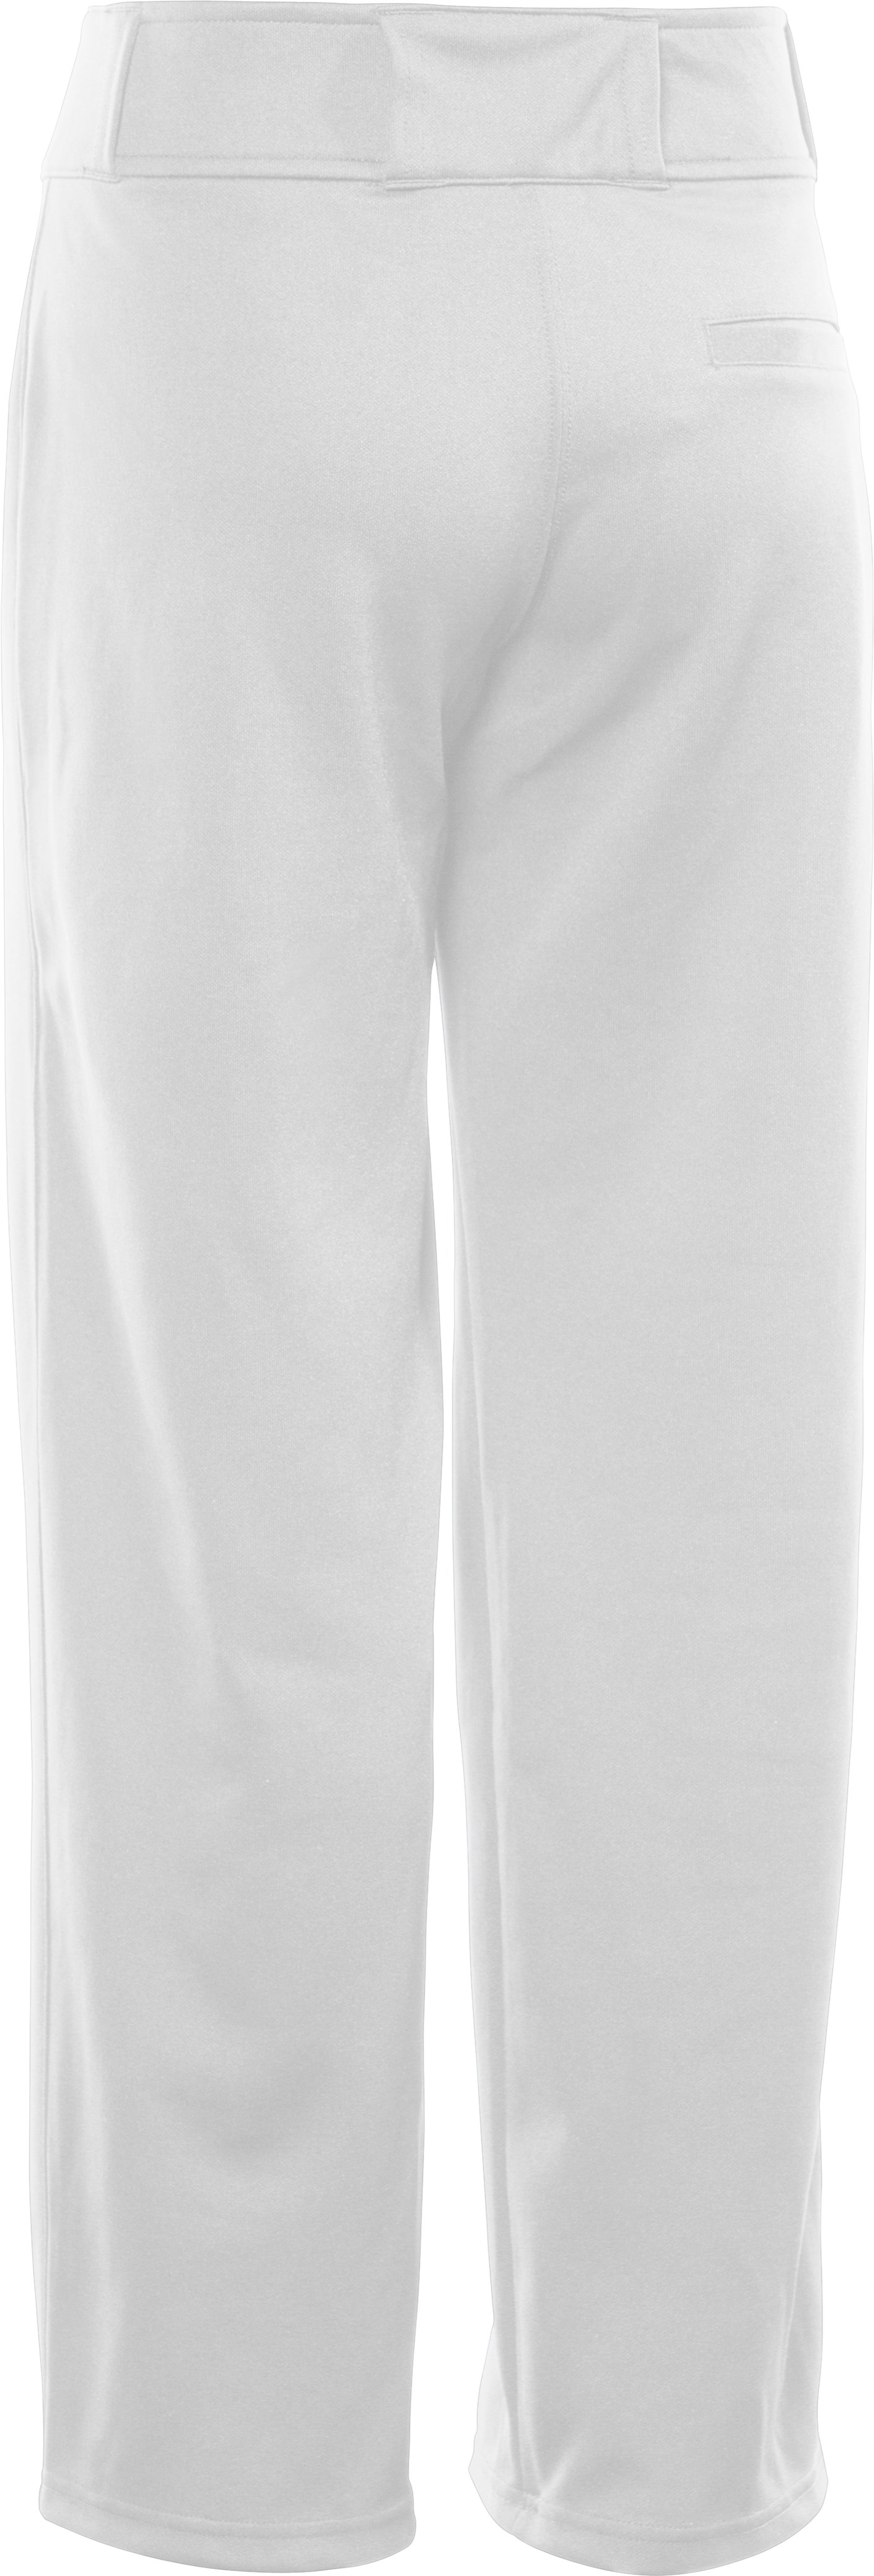 Boys' UA Clean Up Baseball Pants, White